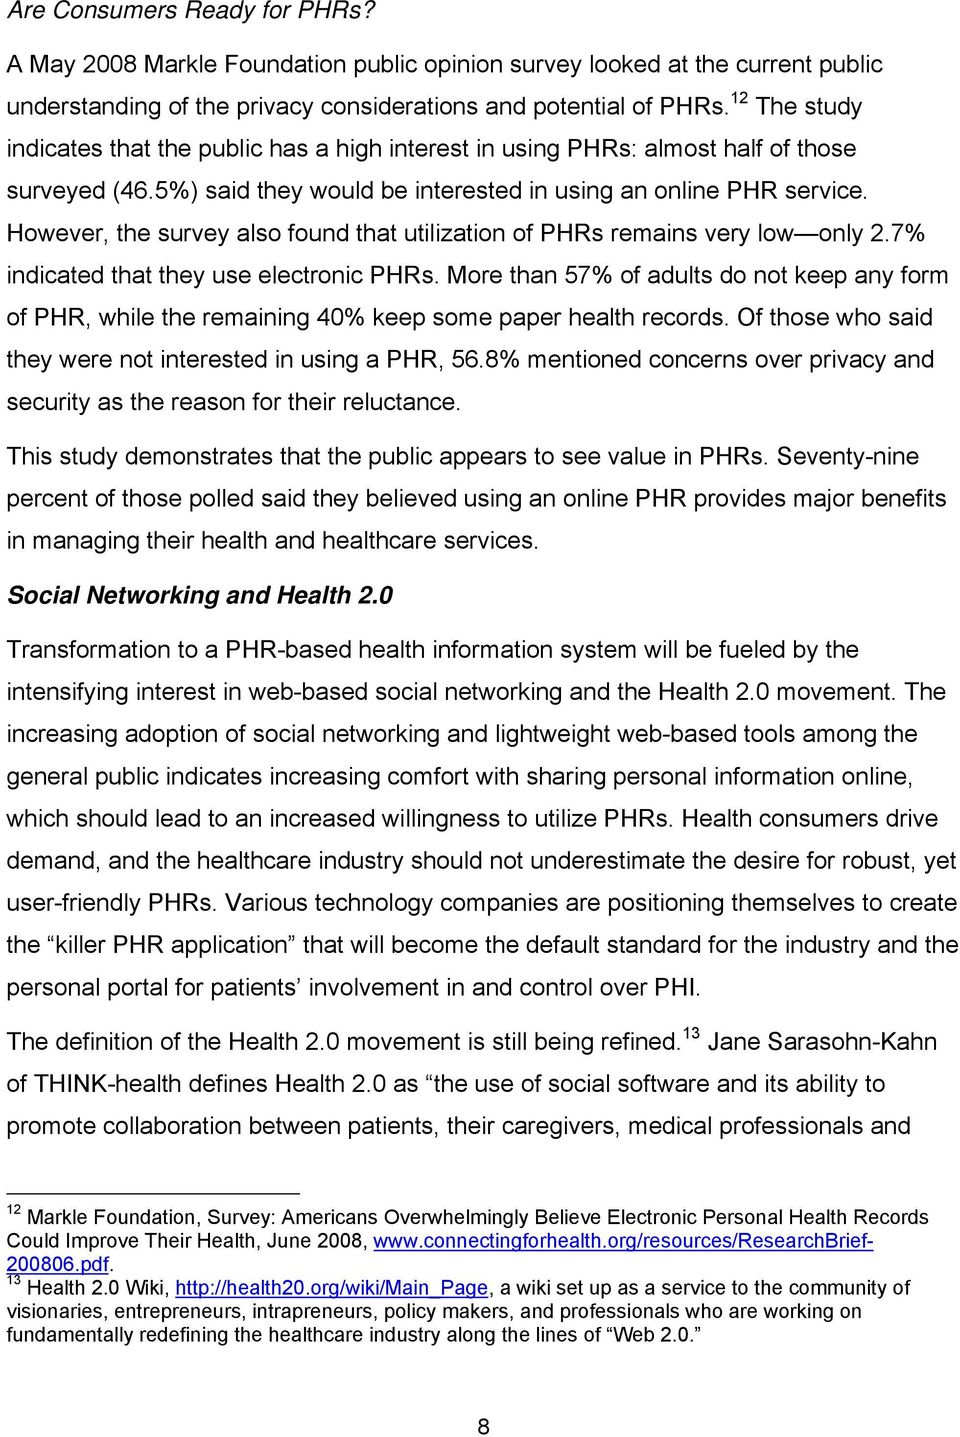 However, the survey also found that utilization of PHRs remains very low only 2.7% indicated that they use electronic PHRs.